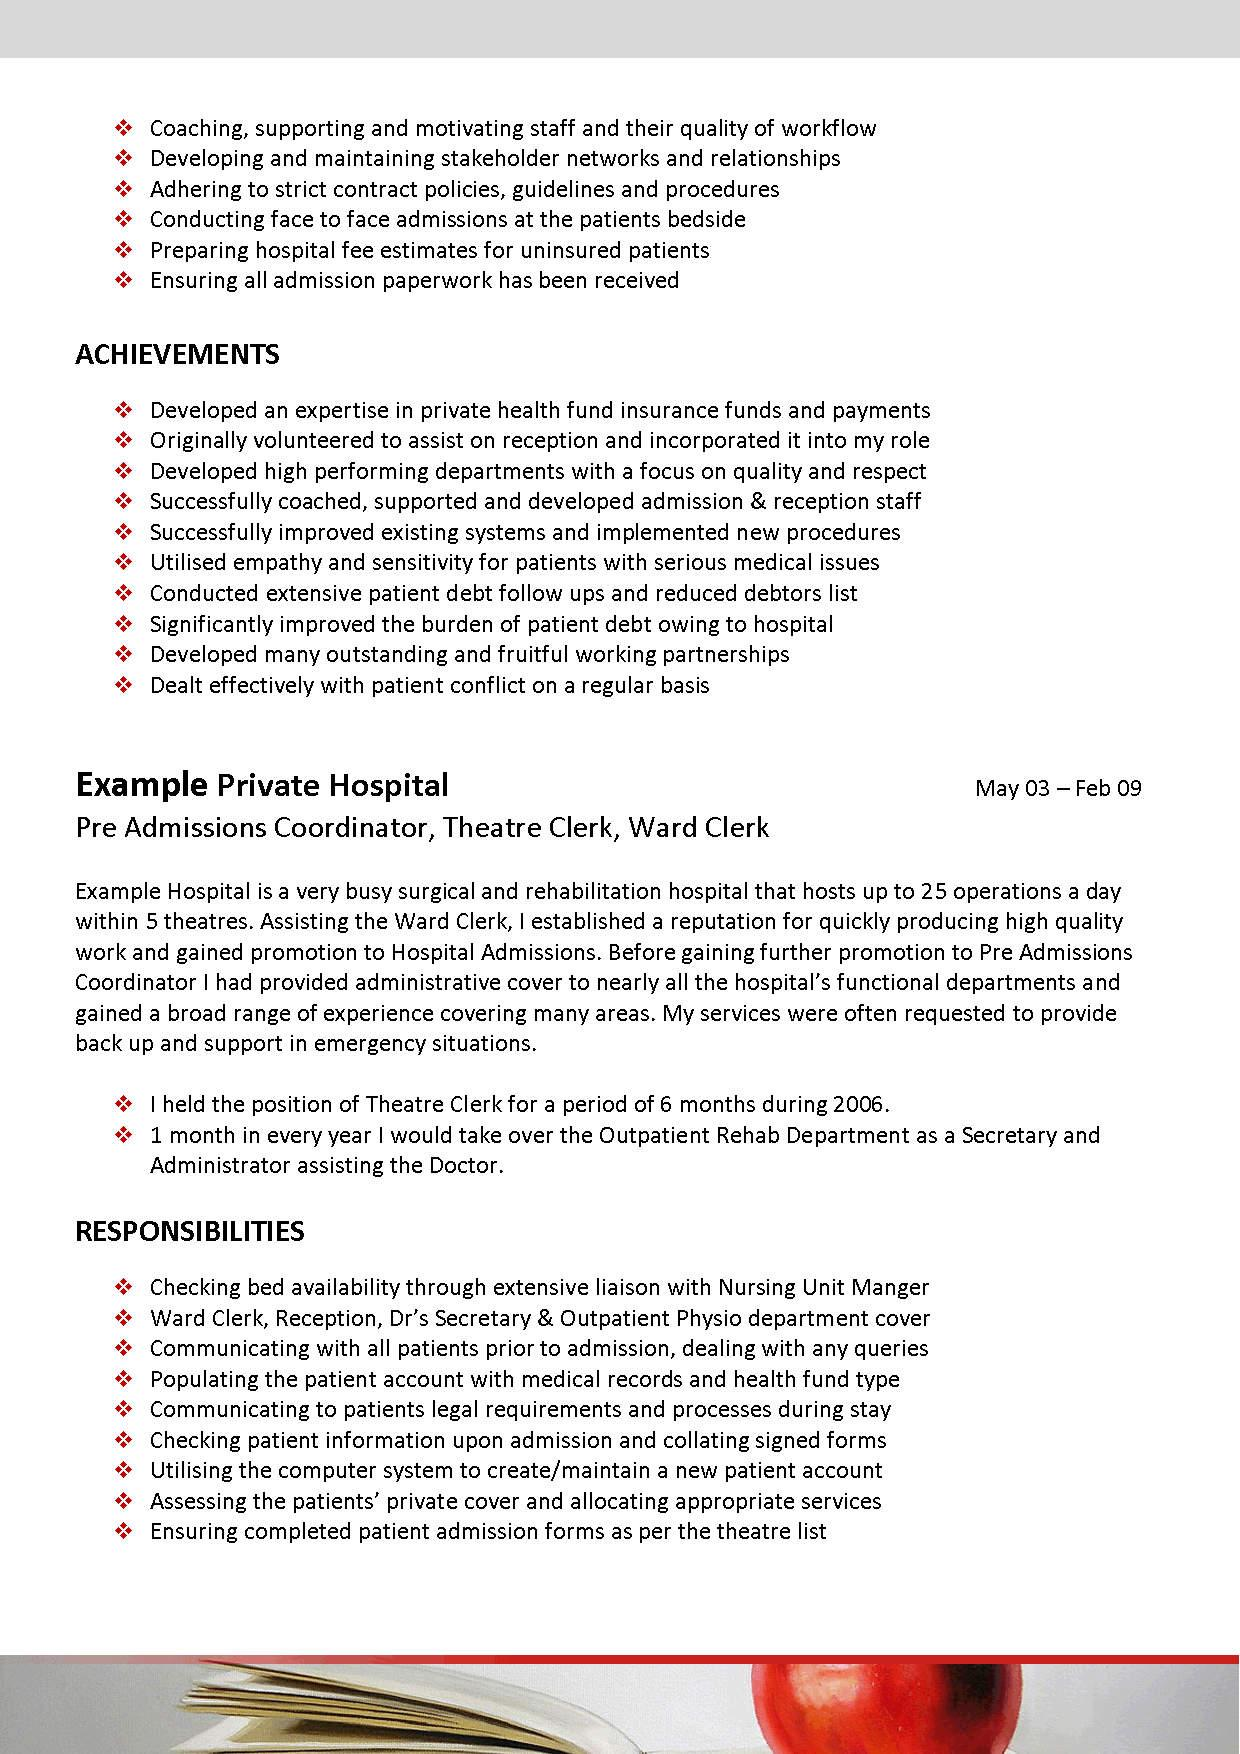 Resume Templates Word Copy And Paste Printable Basic Resume Template With Outline Blank Form We Can Help With Professional Resume Writing Resume